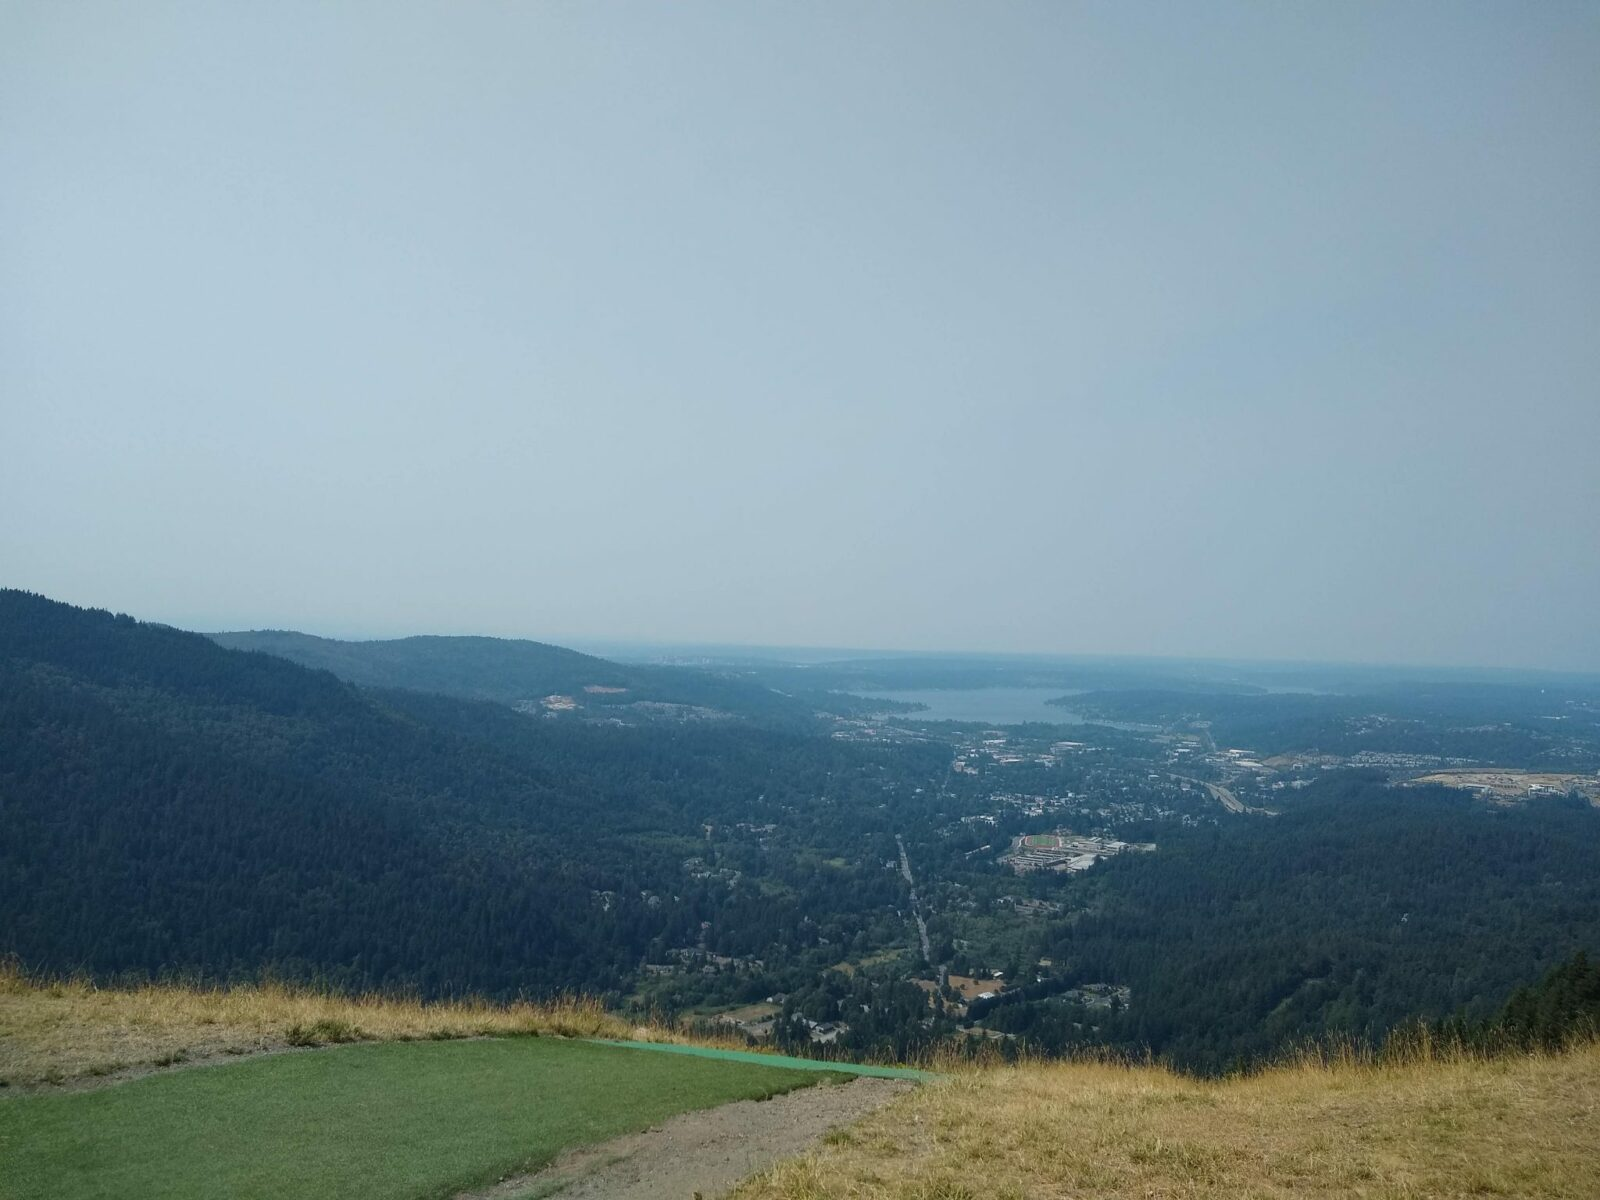 Poo Poo Point, and extremely popular hike near Issaquah. In the foreground is a green grassy areas for paragliders to launch. In the distance are forested hillsides and a town and a lake. The farther distance is obscured by haze from wildfire smoke